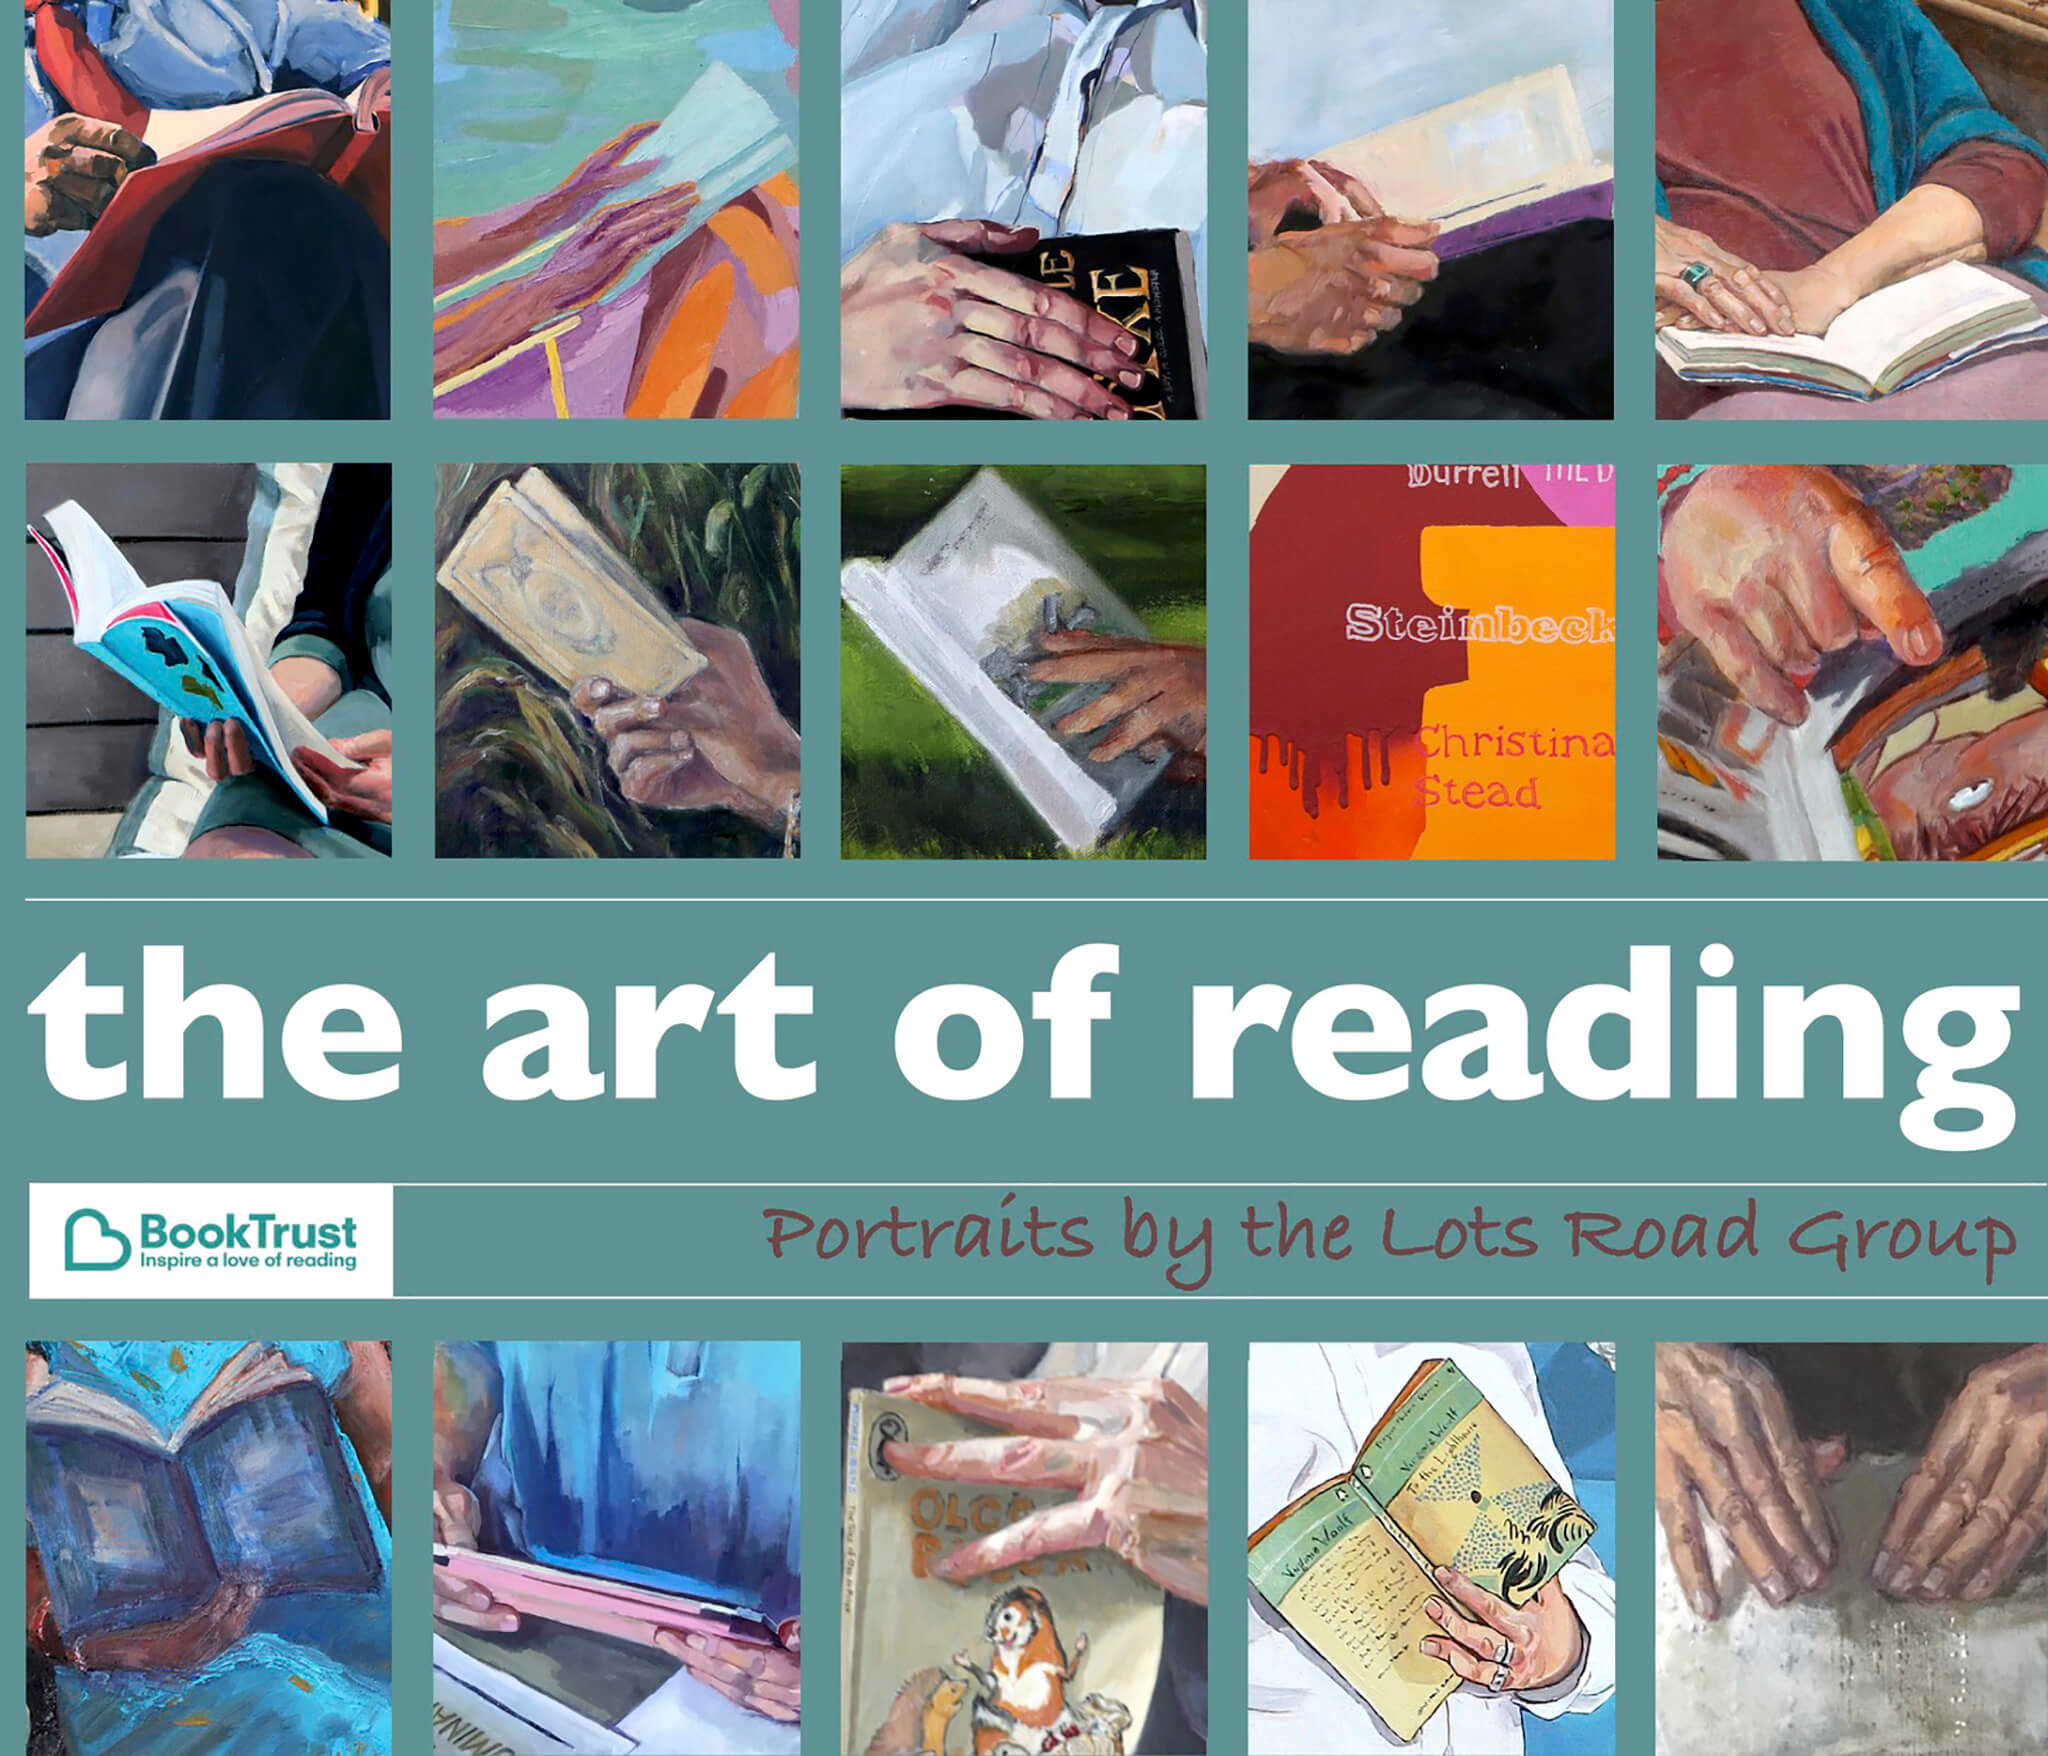 The Lots Road Group The Art of Reading exhibition catalogue cover.